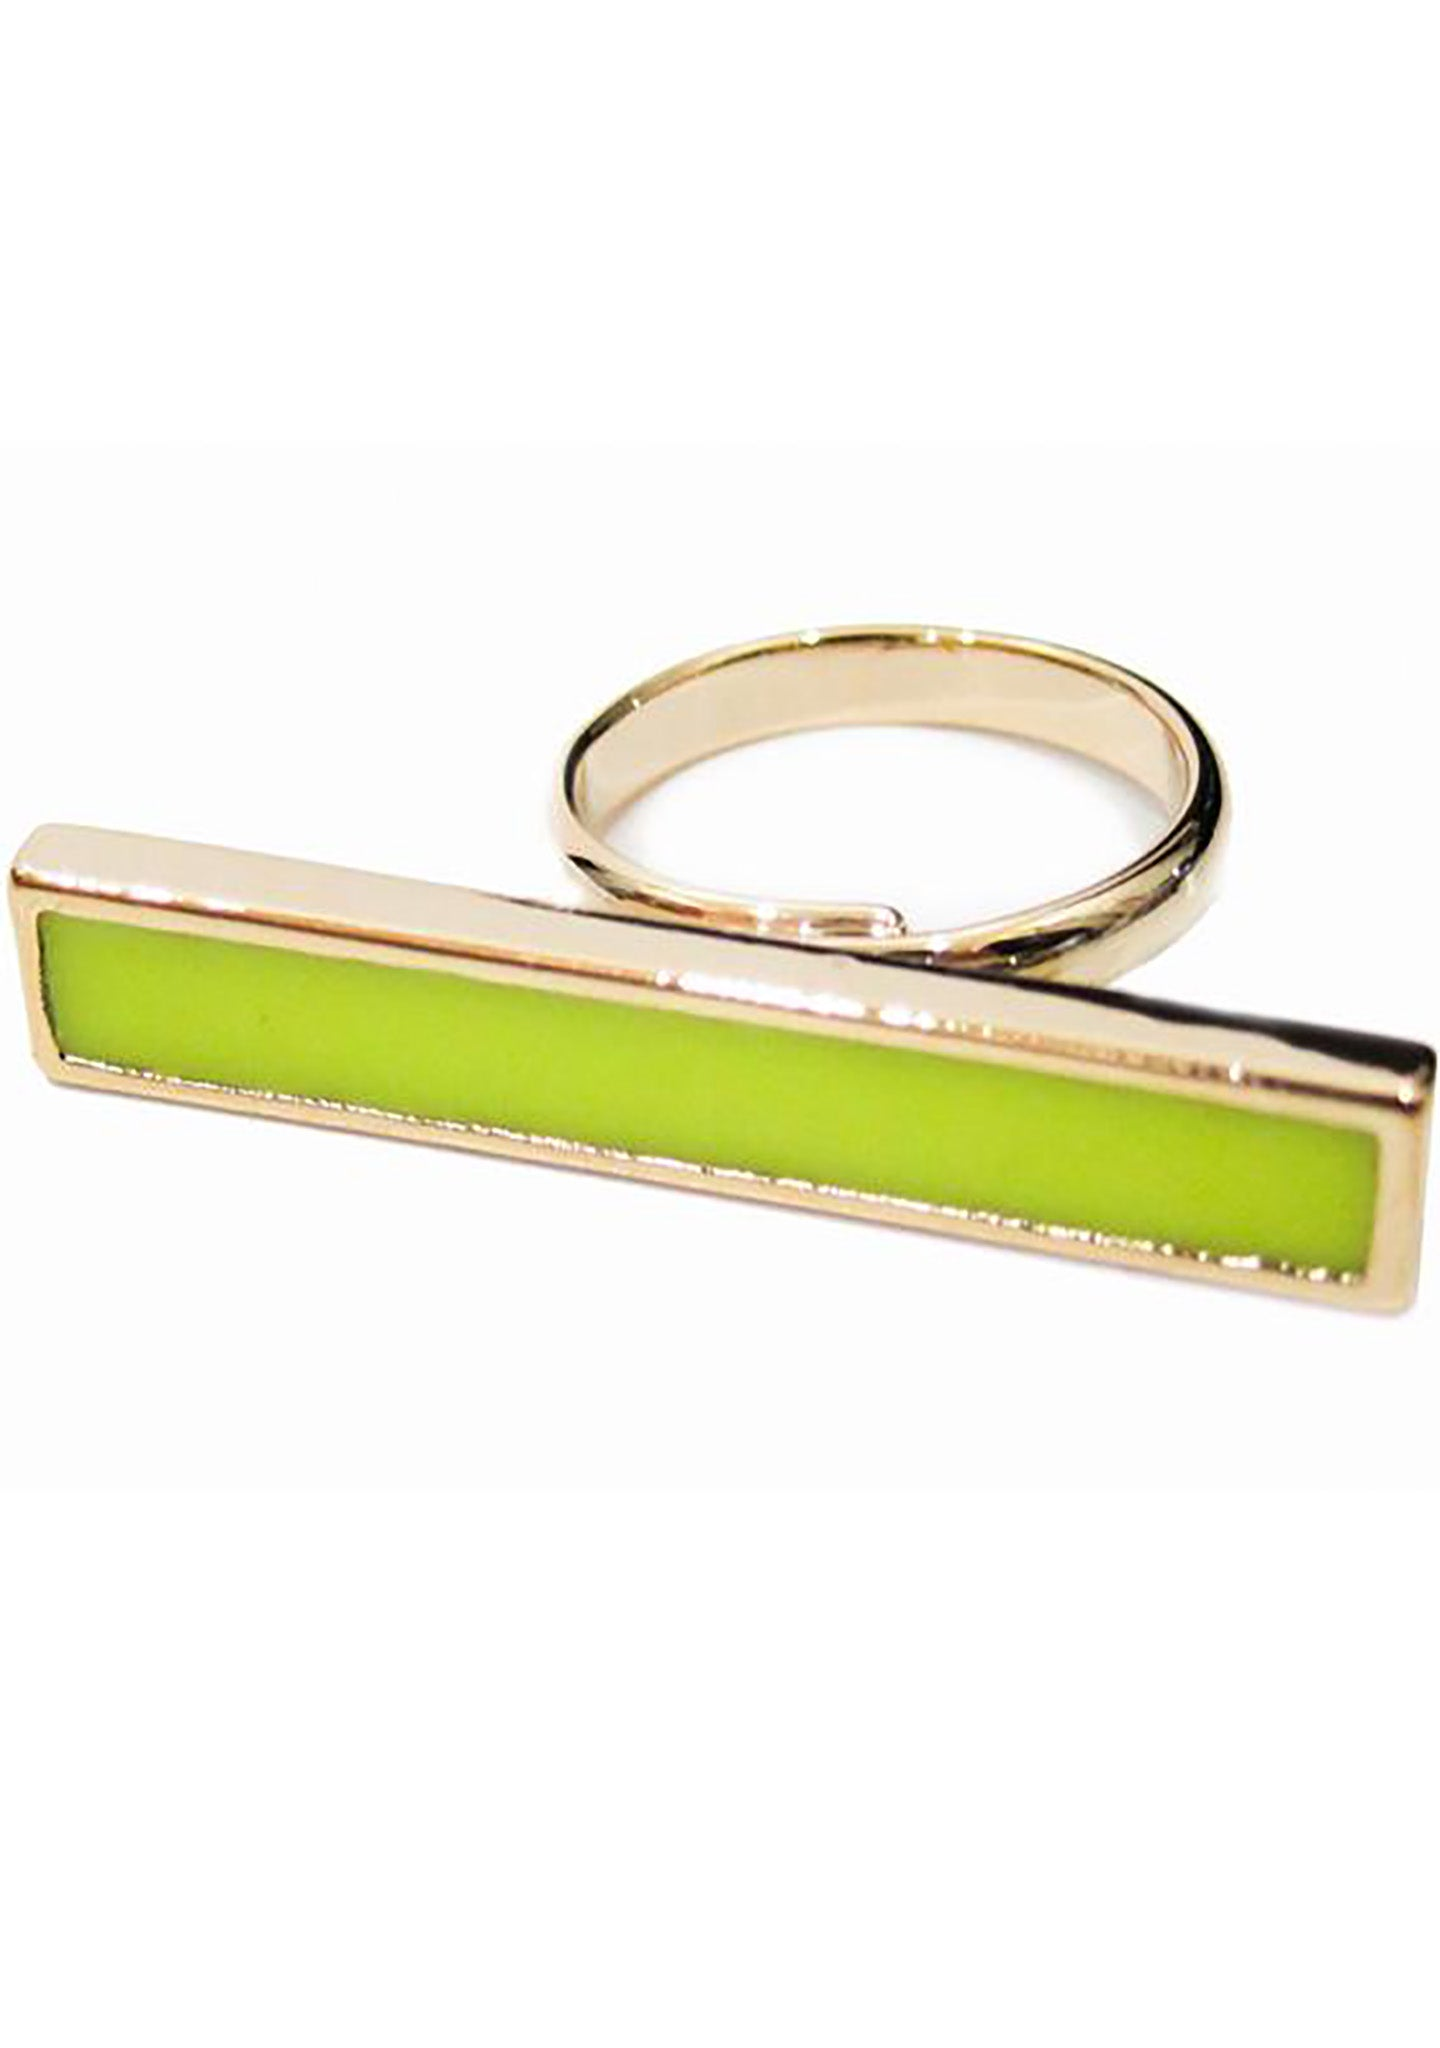 FASHô Neon Bar Ring in Neon Yellow